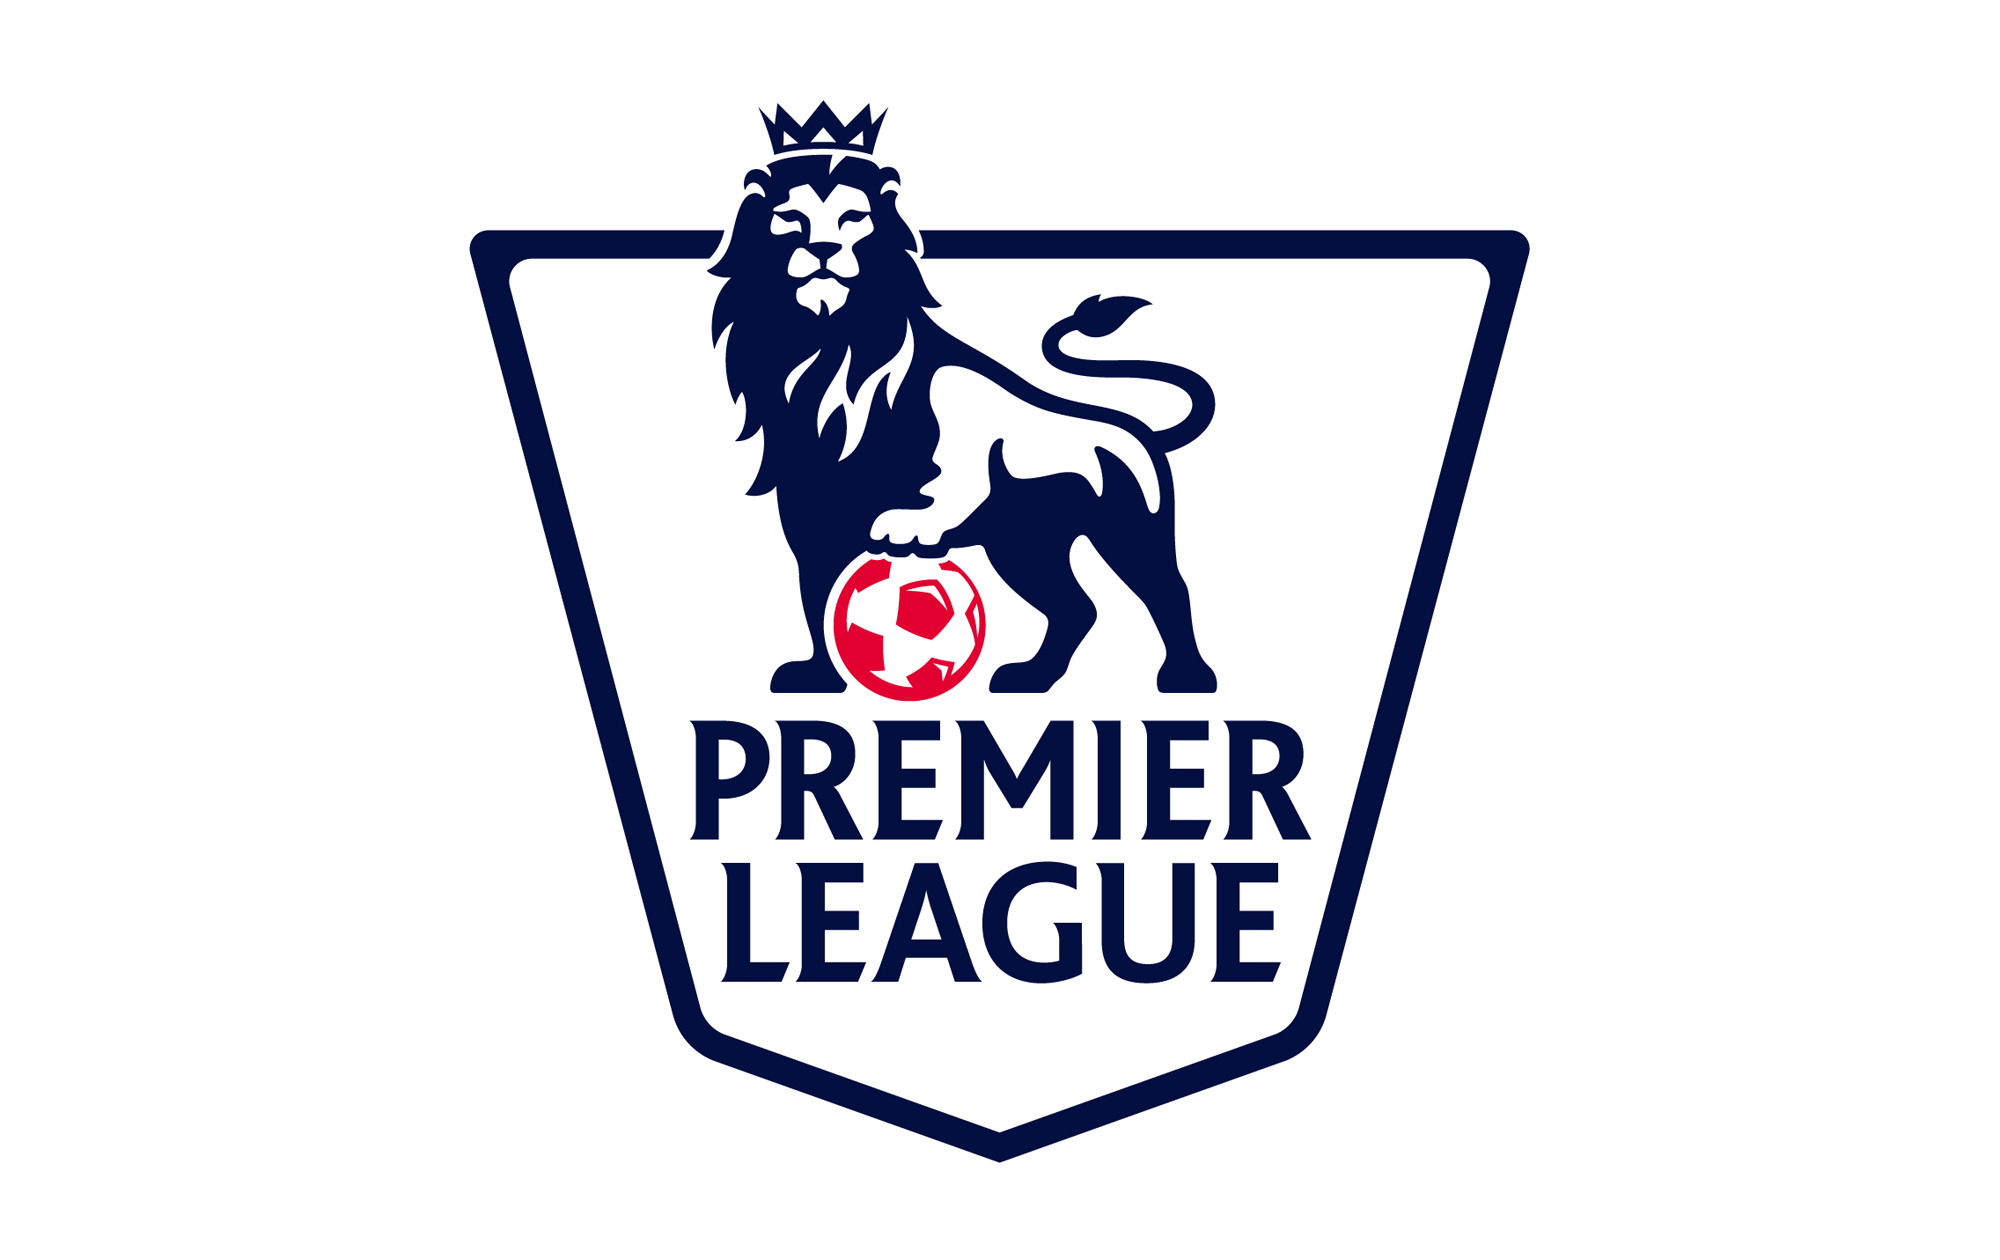 Enjoy the Premier League Games with Our Exclusive Betting Offers